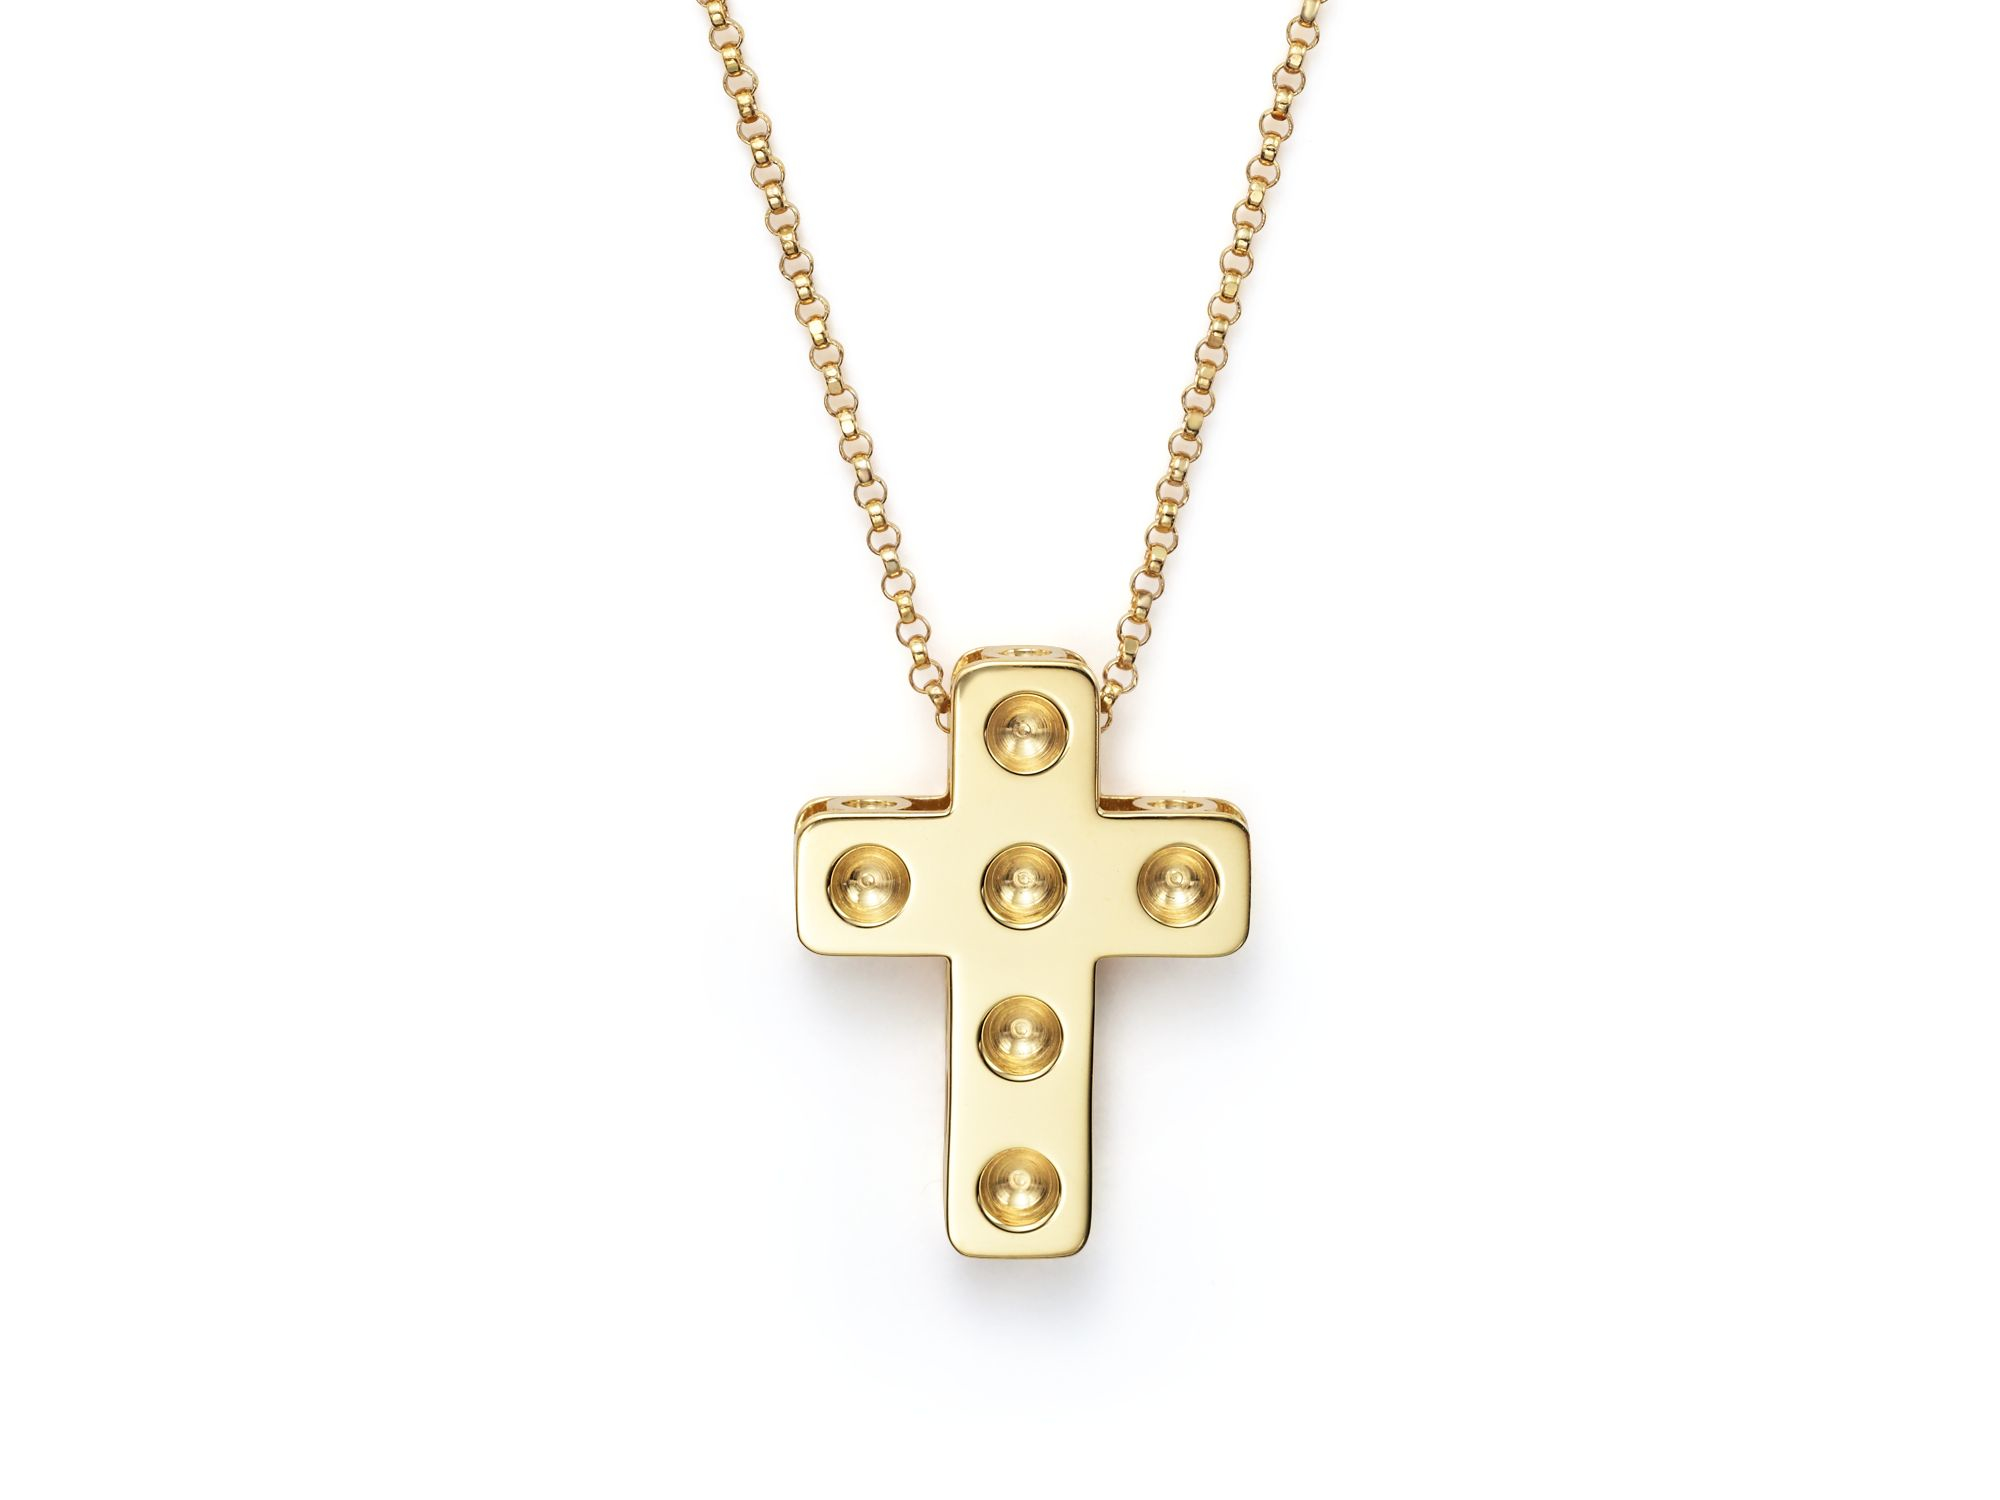 Roberto Coin 18k Yellow Gold Pois Moi Necklace with Diamonds, 16L